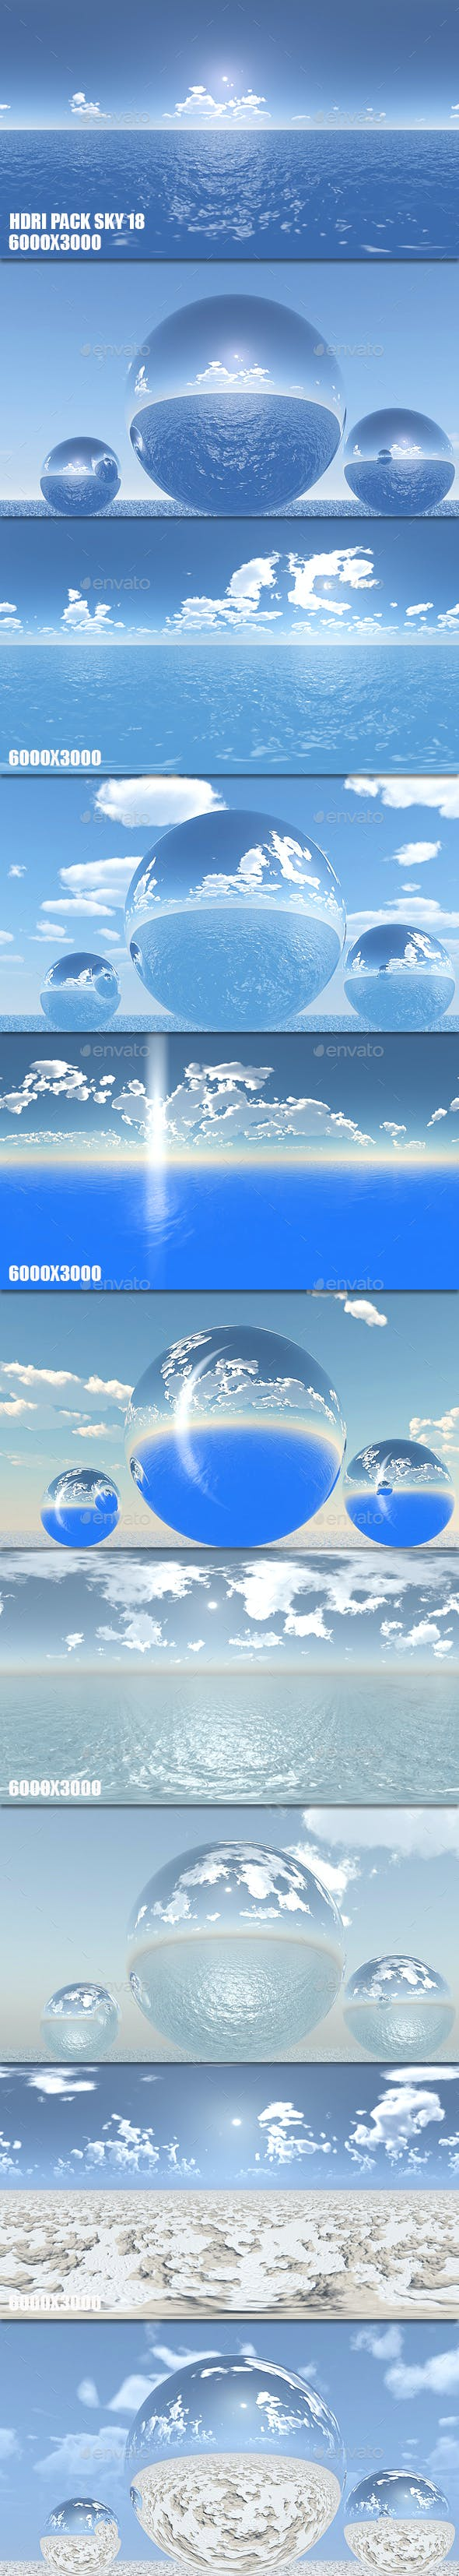 HDRI Pack Sky 18 - 3DOcean Item for Sale